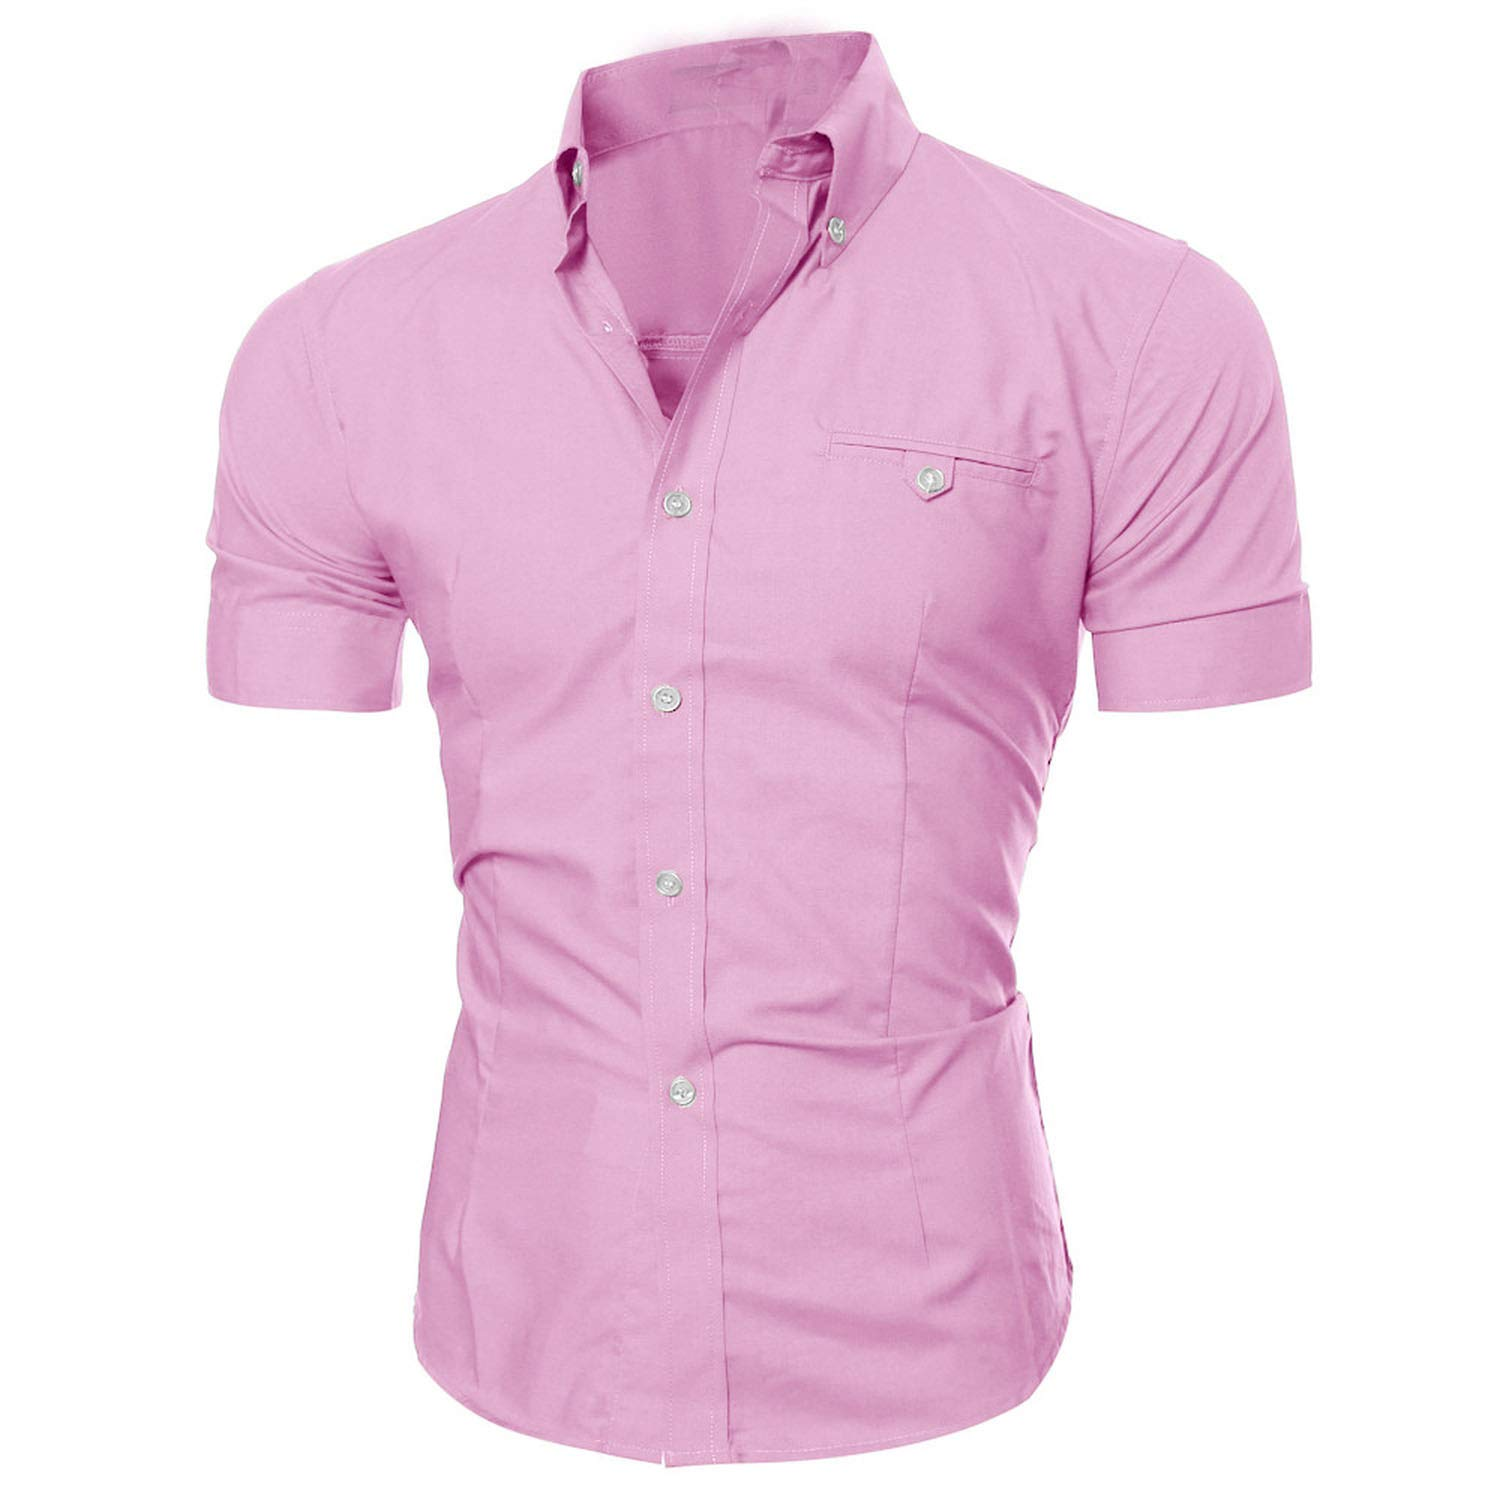 Jamais-Vu Mens Shirt Short Sleeve Shirt Mens Casual Button Down Shirts Mens Fashion Shirt,Rosa,XL